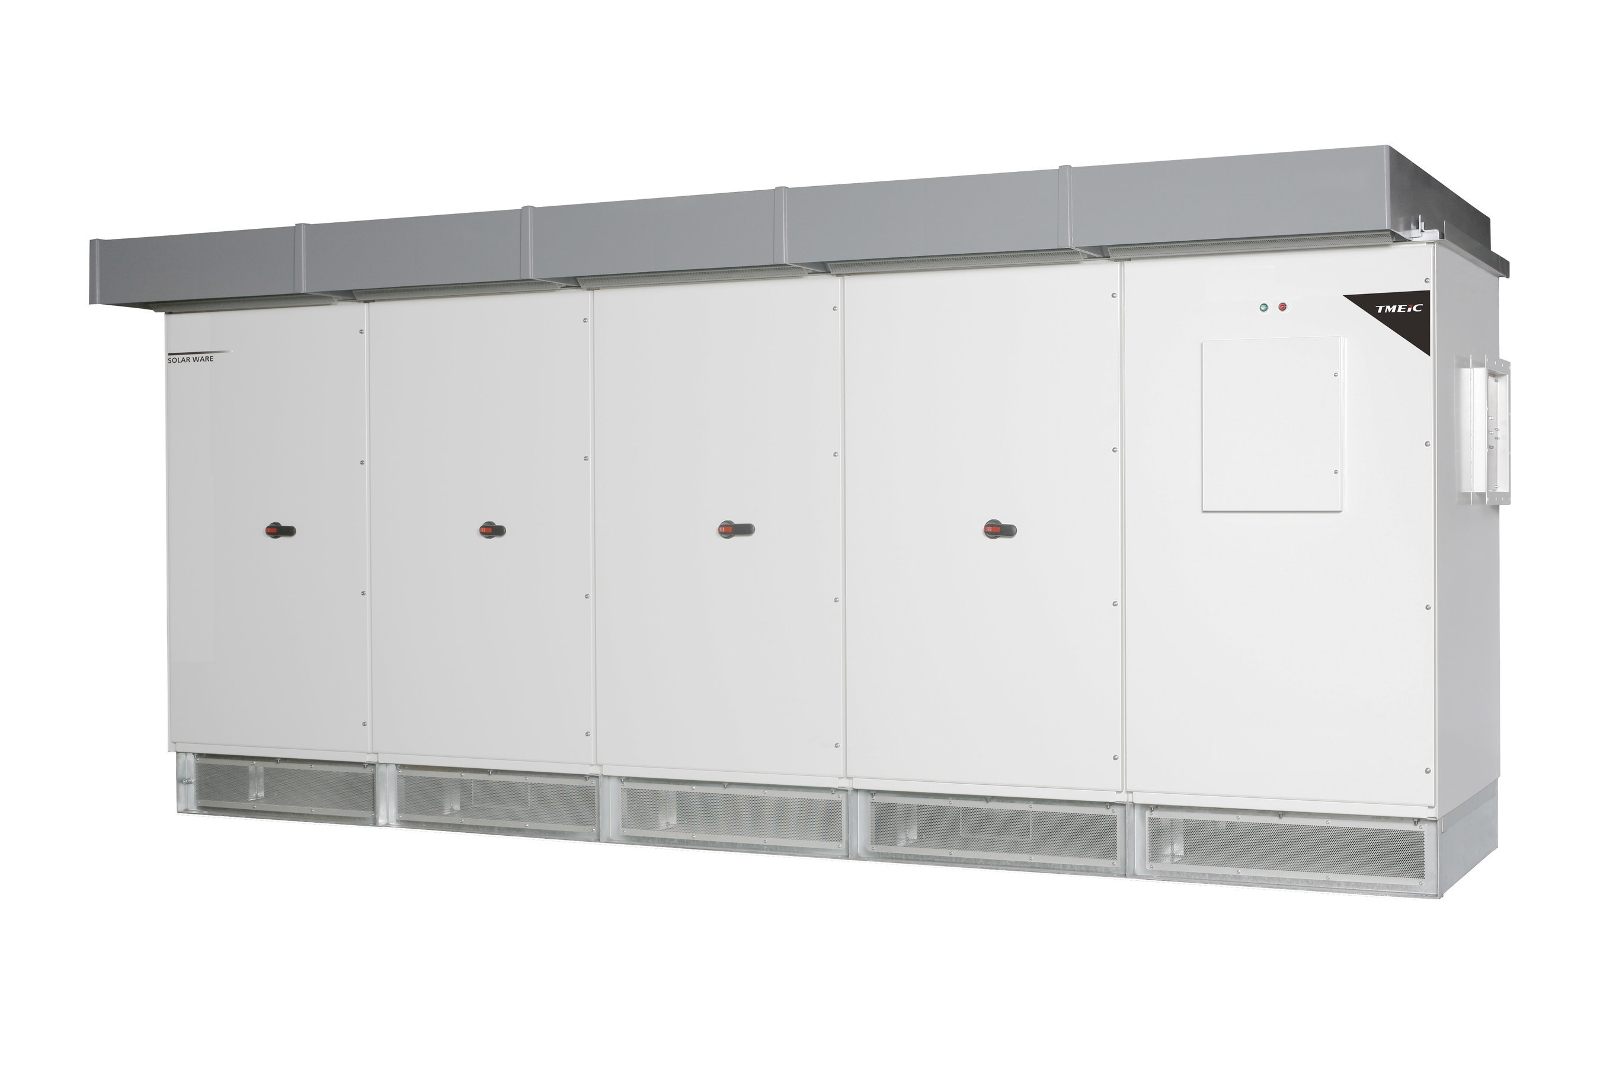 The new Samurai Series inverters offer a maximum efficiency of 98.8%. Image: TMEIC